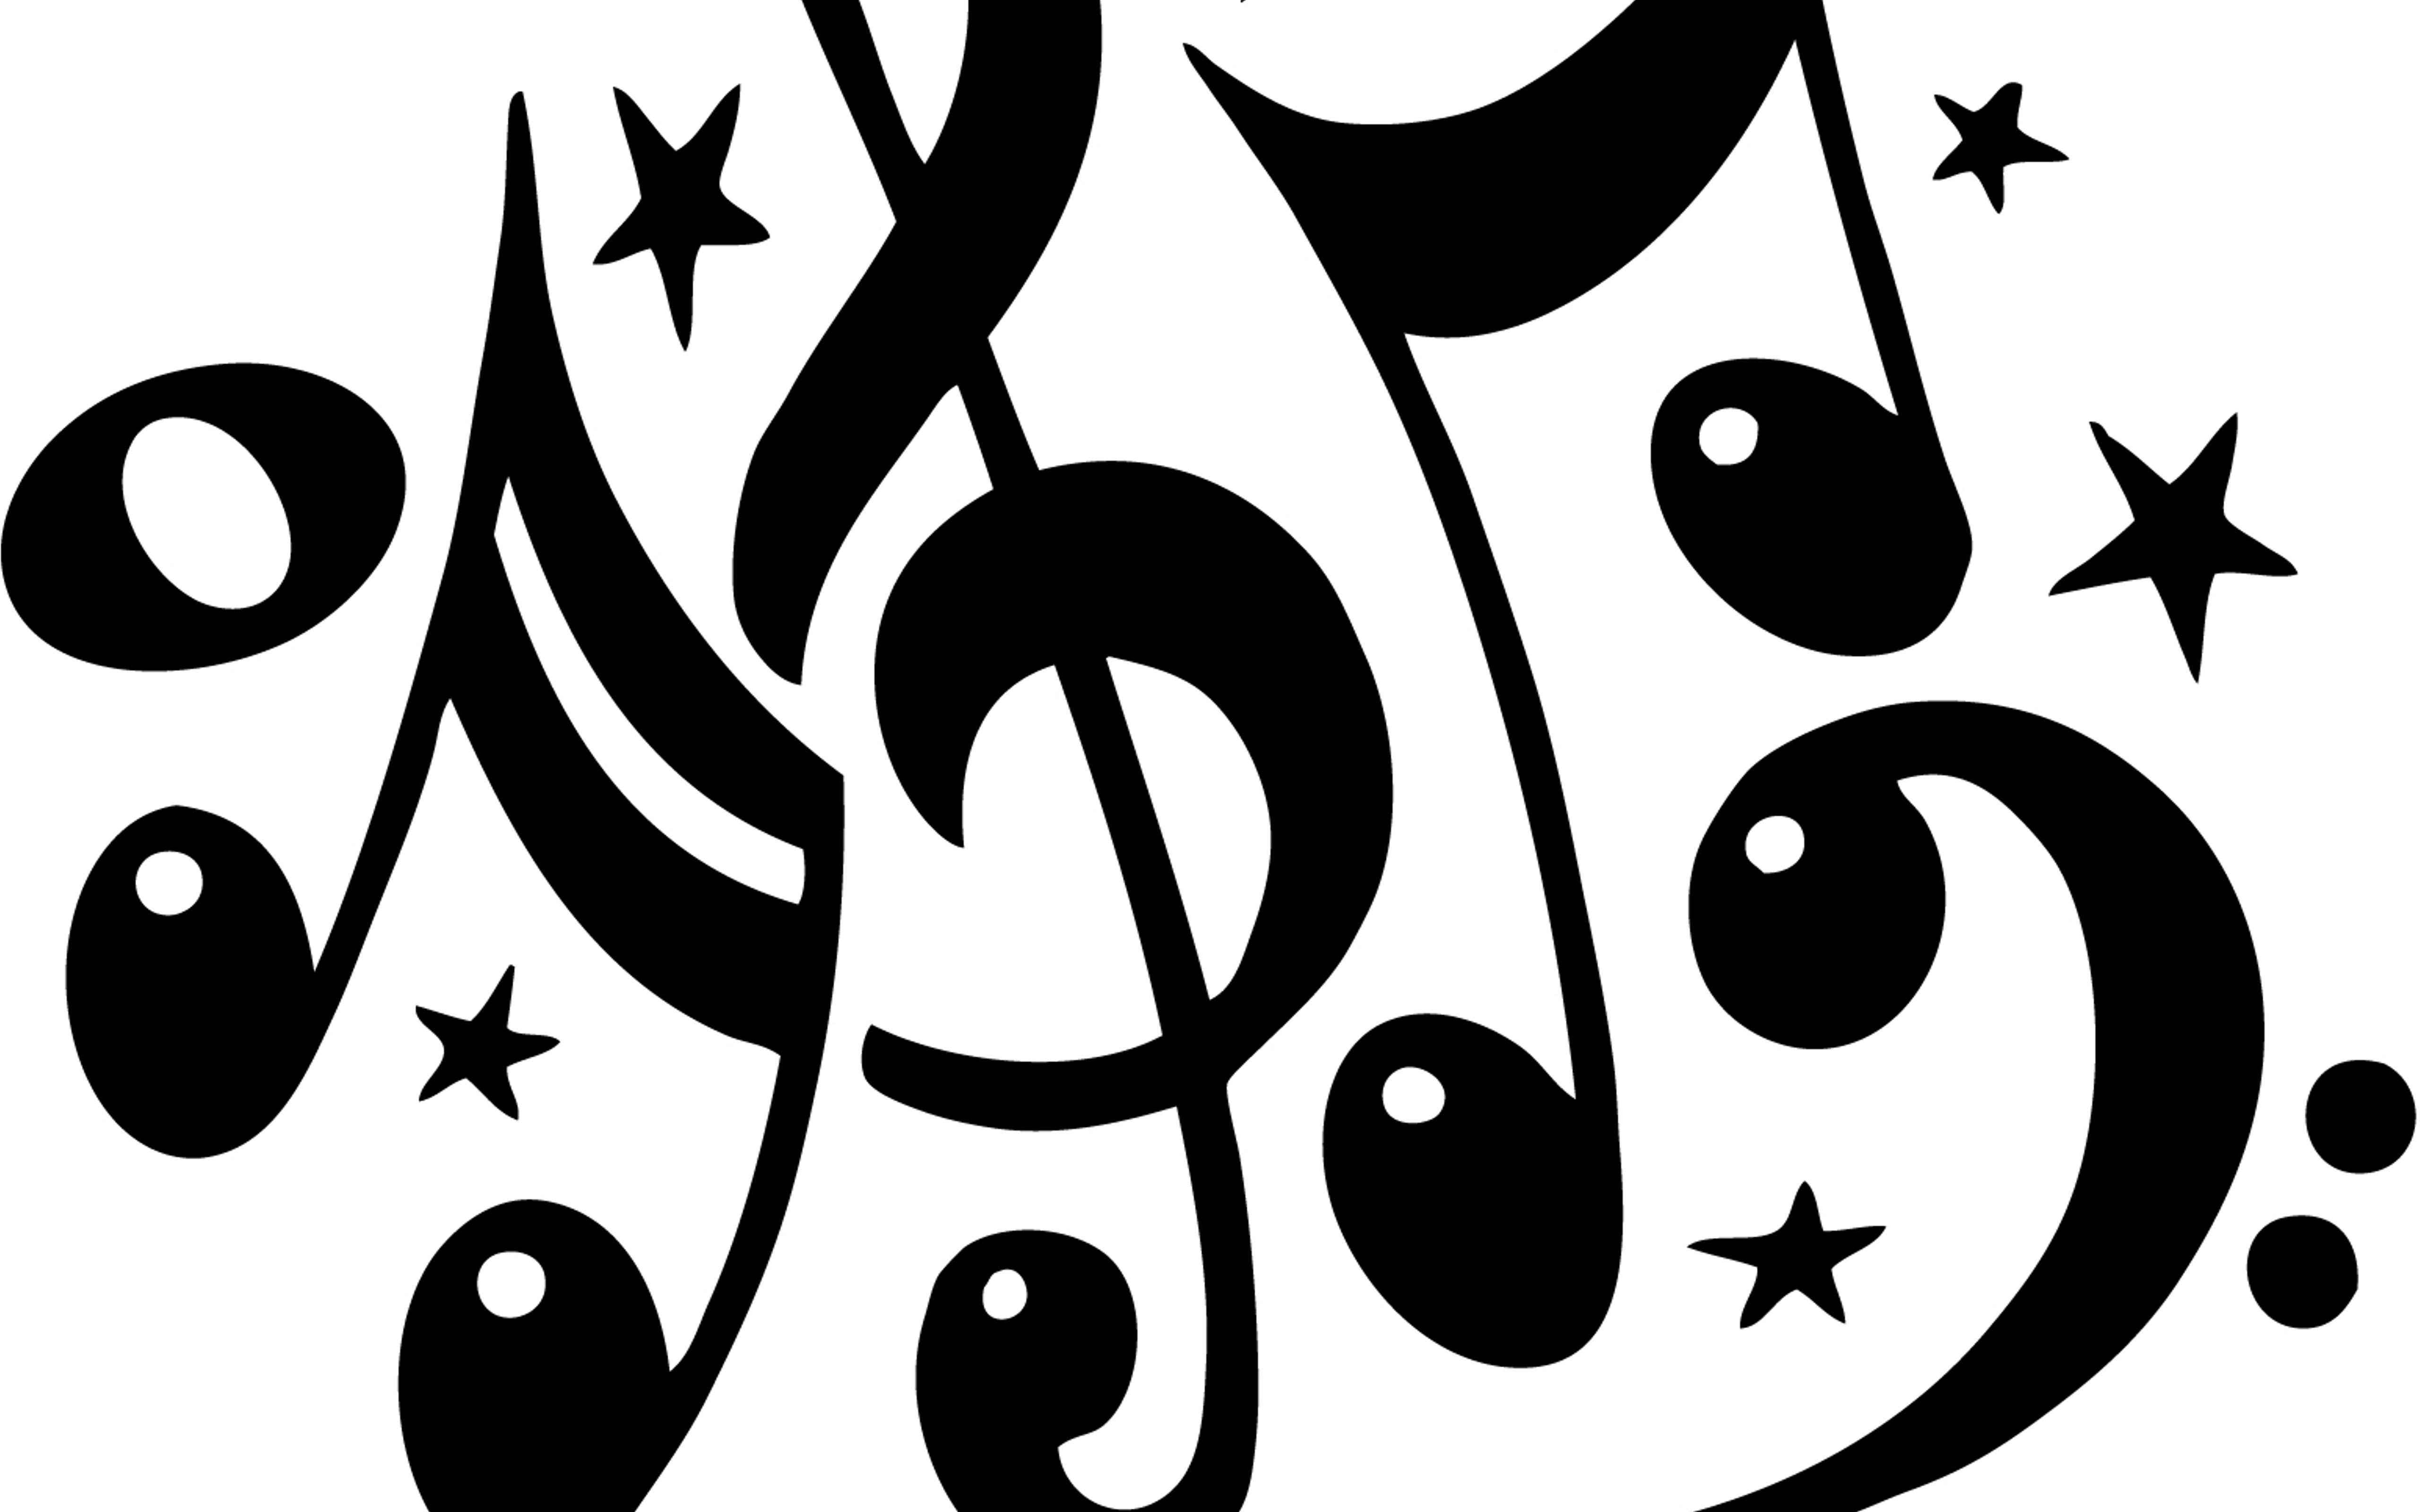 Black Musical Notes And Sol Key On White Background Wallpaper Download 5120x3200